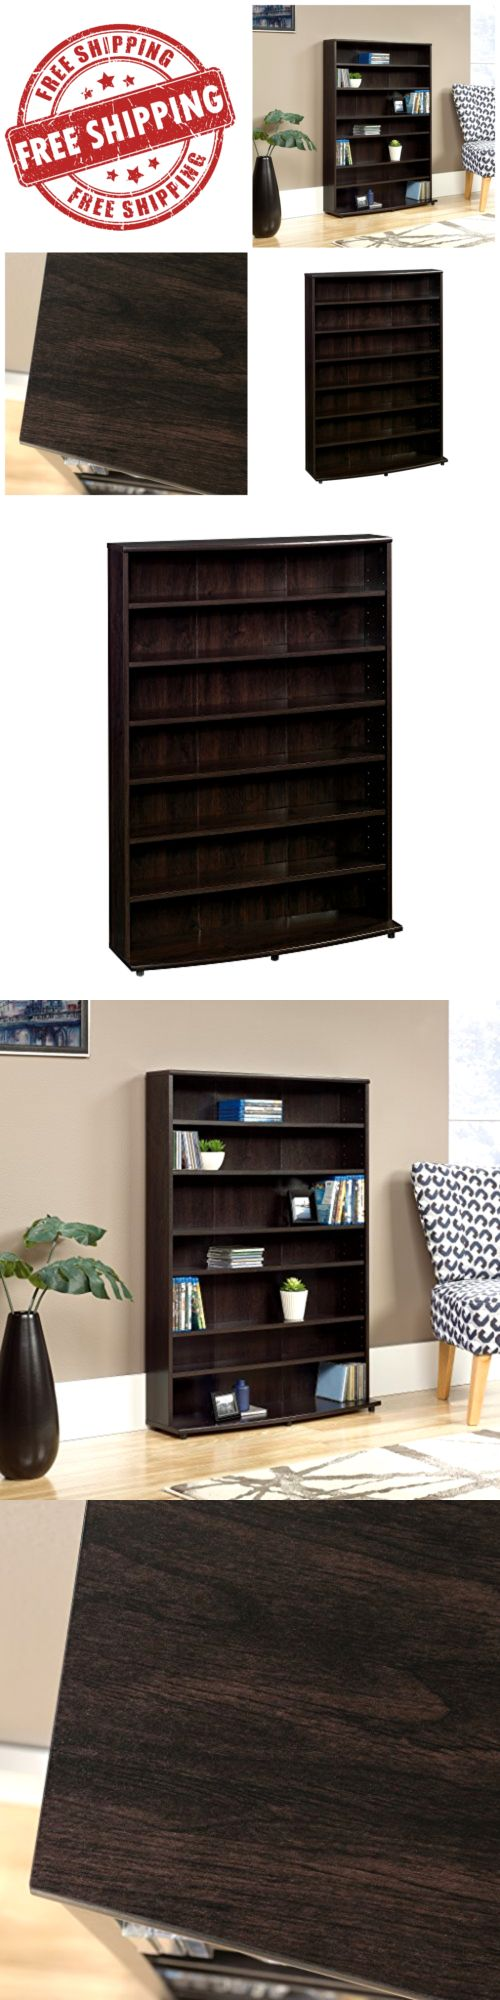 CD and Video Racks 22653: Multimedia Dvd Tower Cd Rack Cherry Shelf Storage Cabinet Stand Organizer Holder -> BUY IT NOW ONLY: $115.1 on eBay!